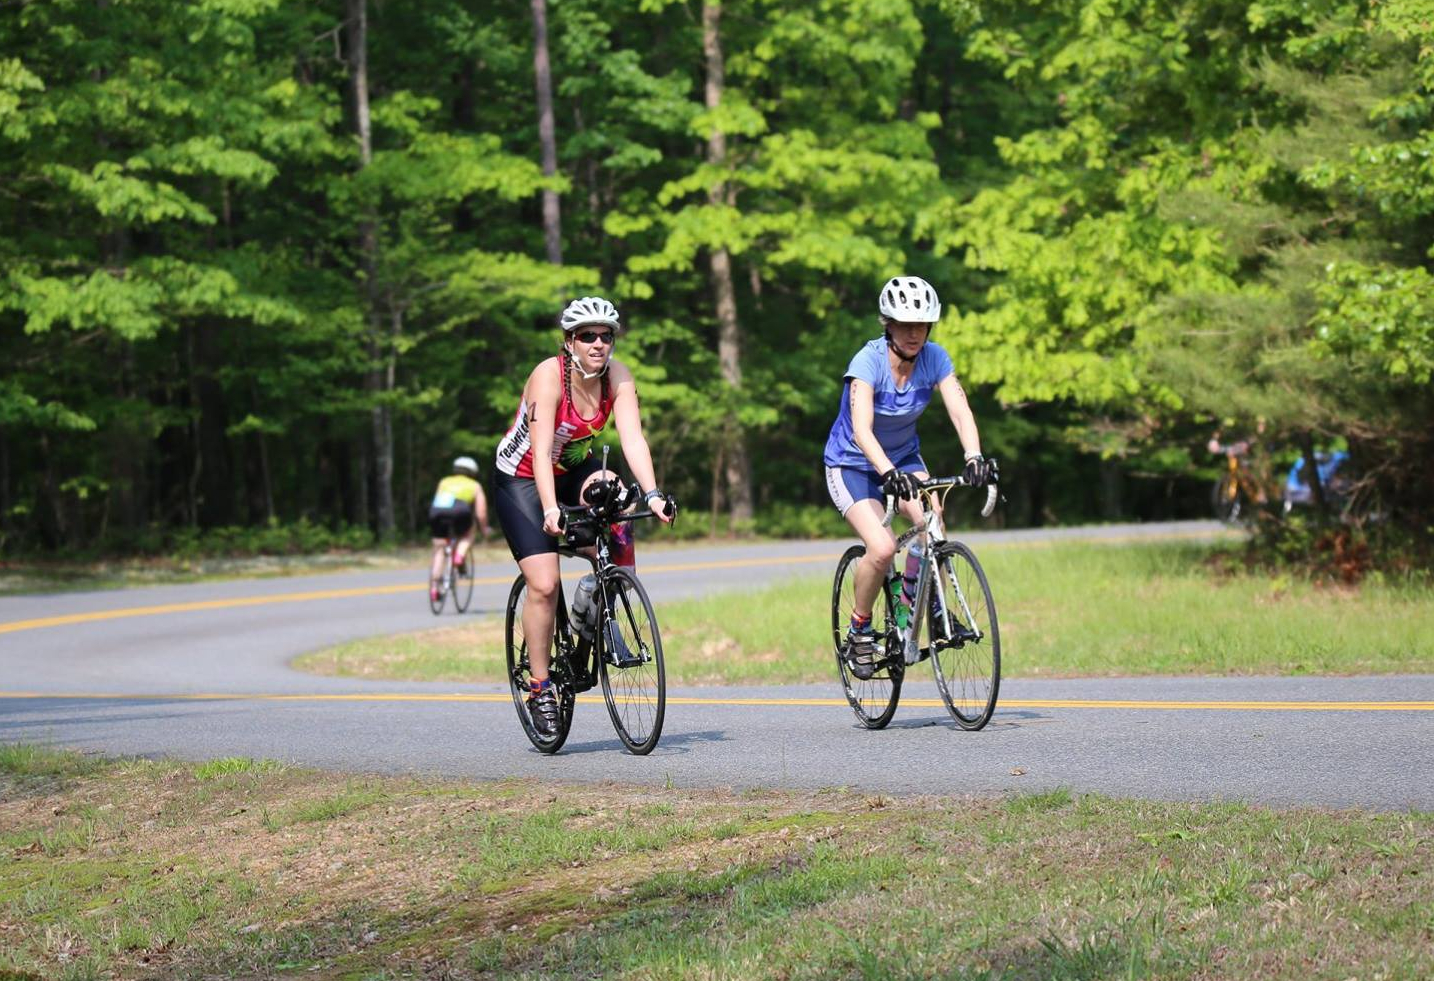 Me and Linda biking together at a triathlon in Virginia in 2016